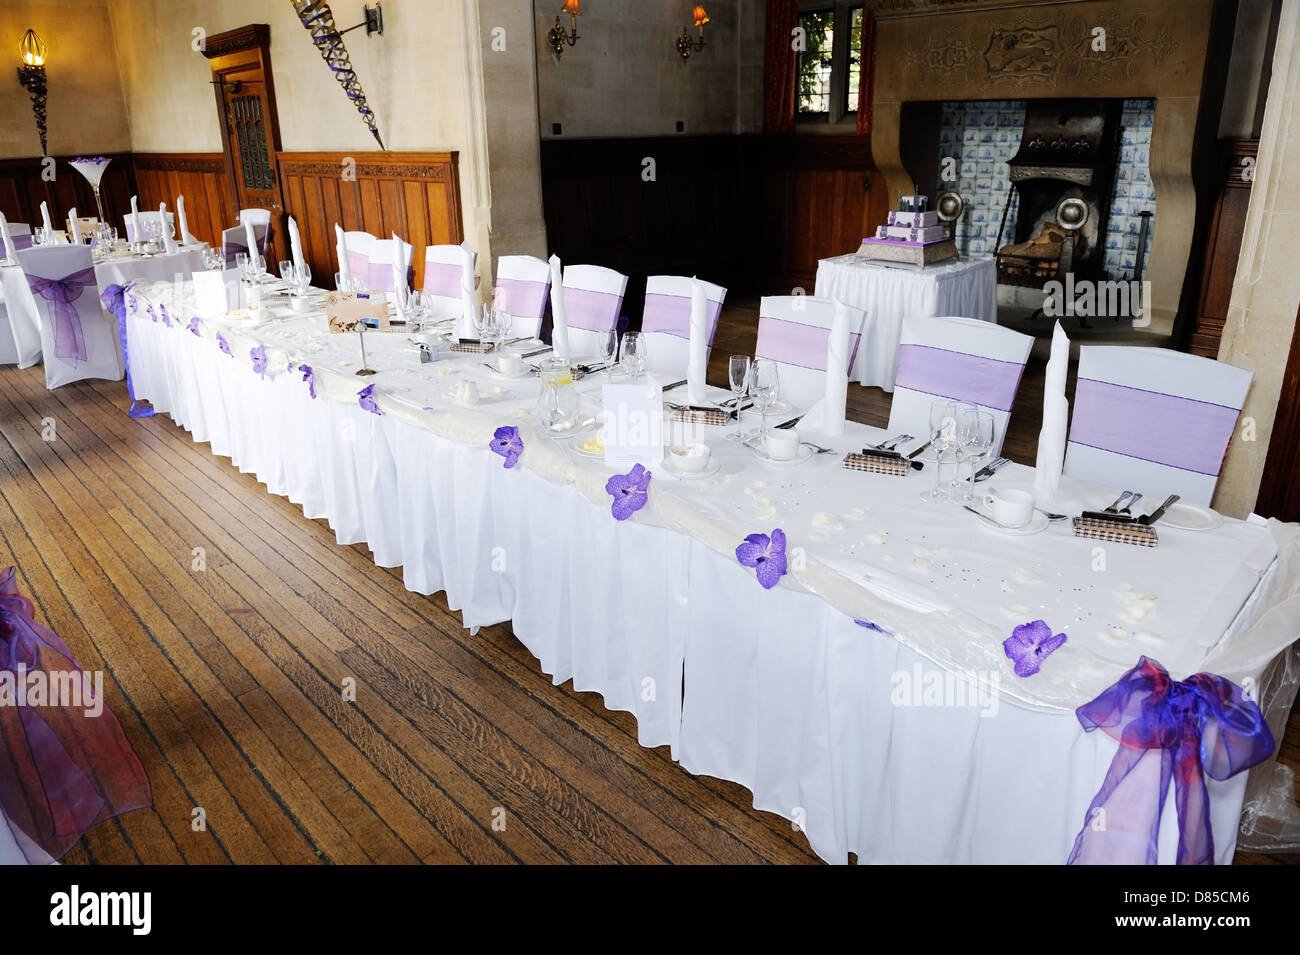 Head Table At Wedding Reception Decorated With Purple Flowers